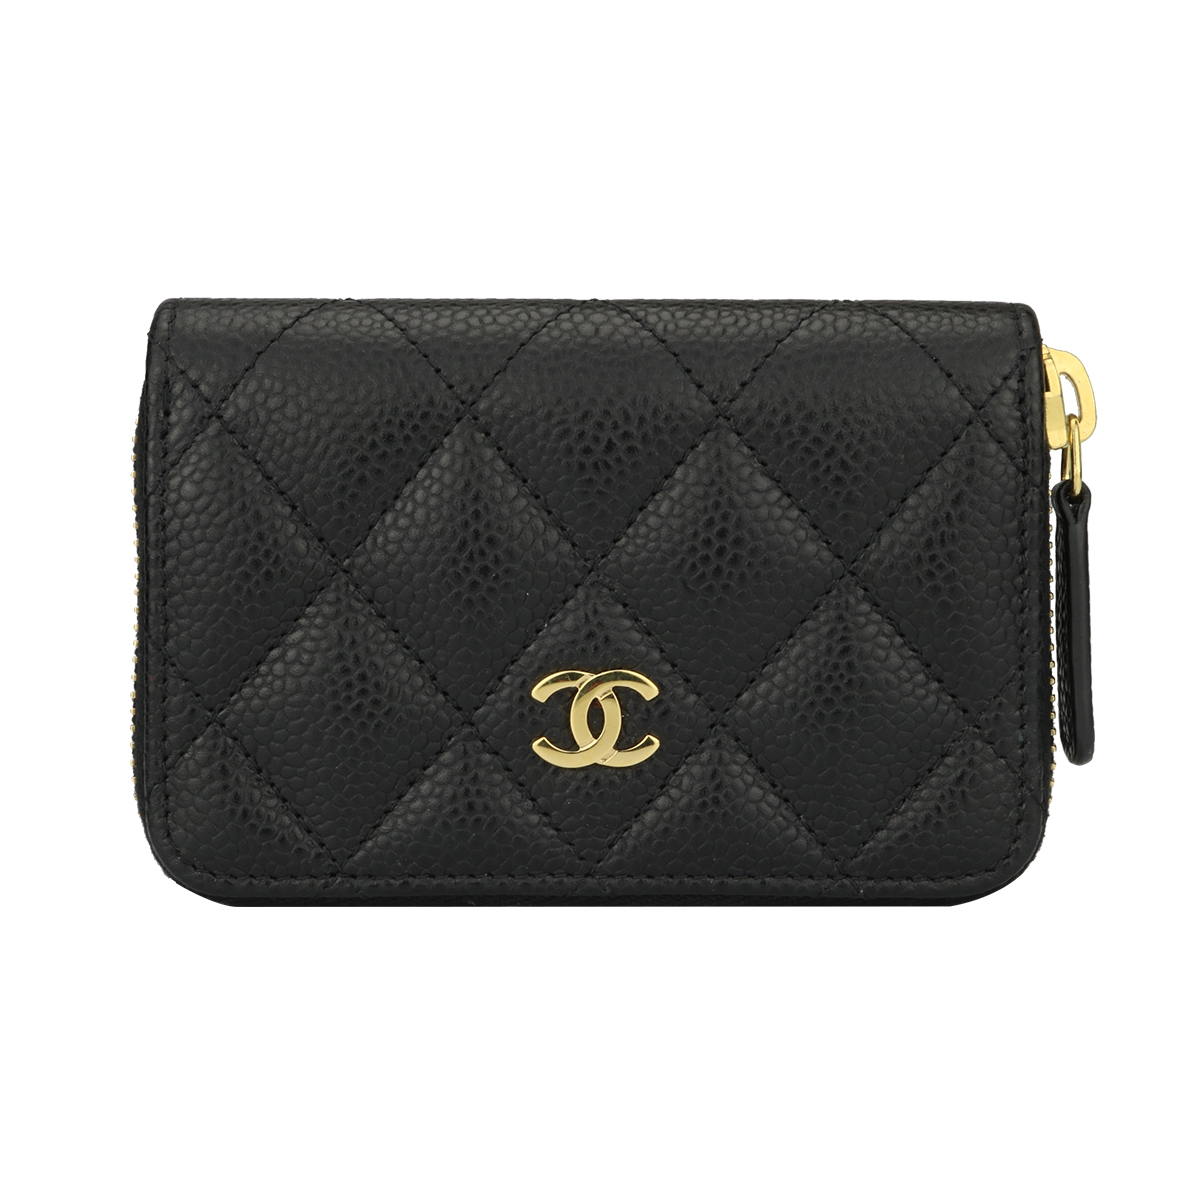 b6eb882d CHANEL Small Zip Wallet/ Coin Purse Black Caviar Gold Hardware 2017